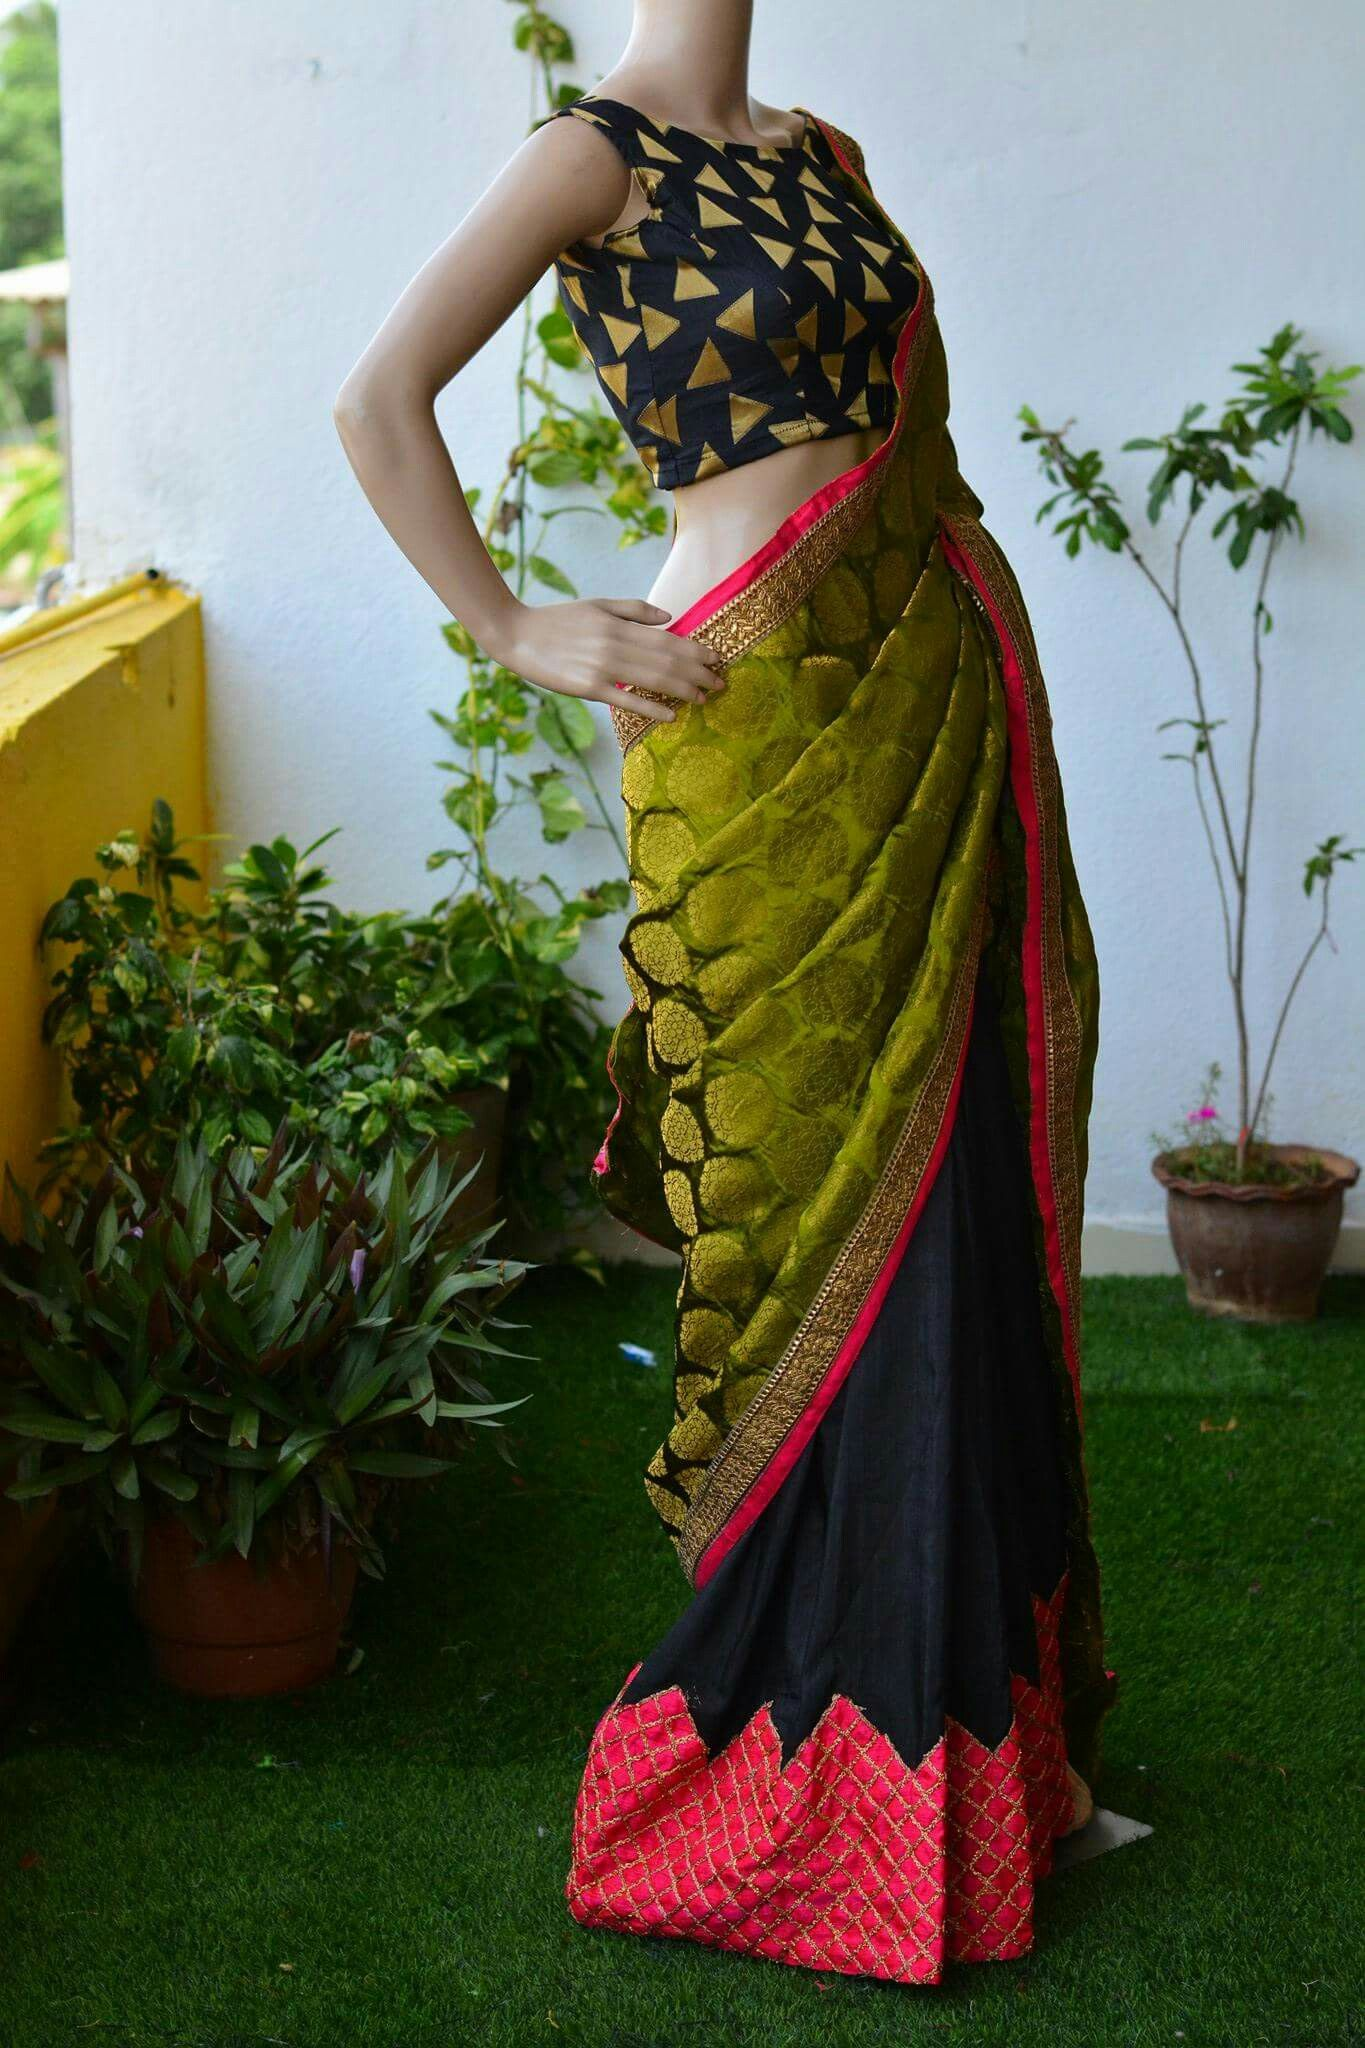 Saree for freshers party in college pin by niki chodhary on nikita  pinterest  saree blouse and saree